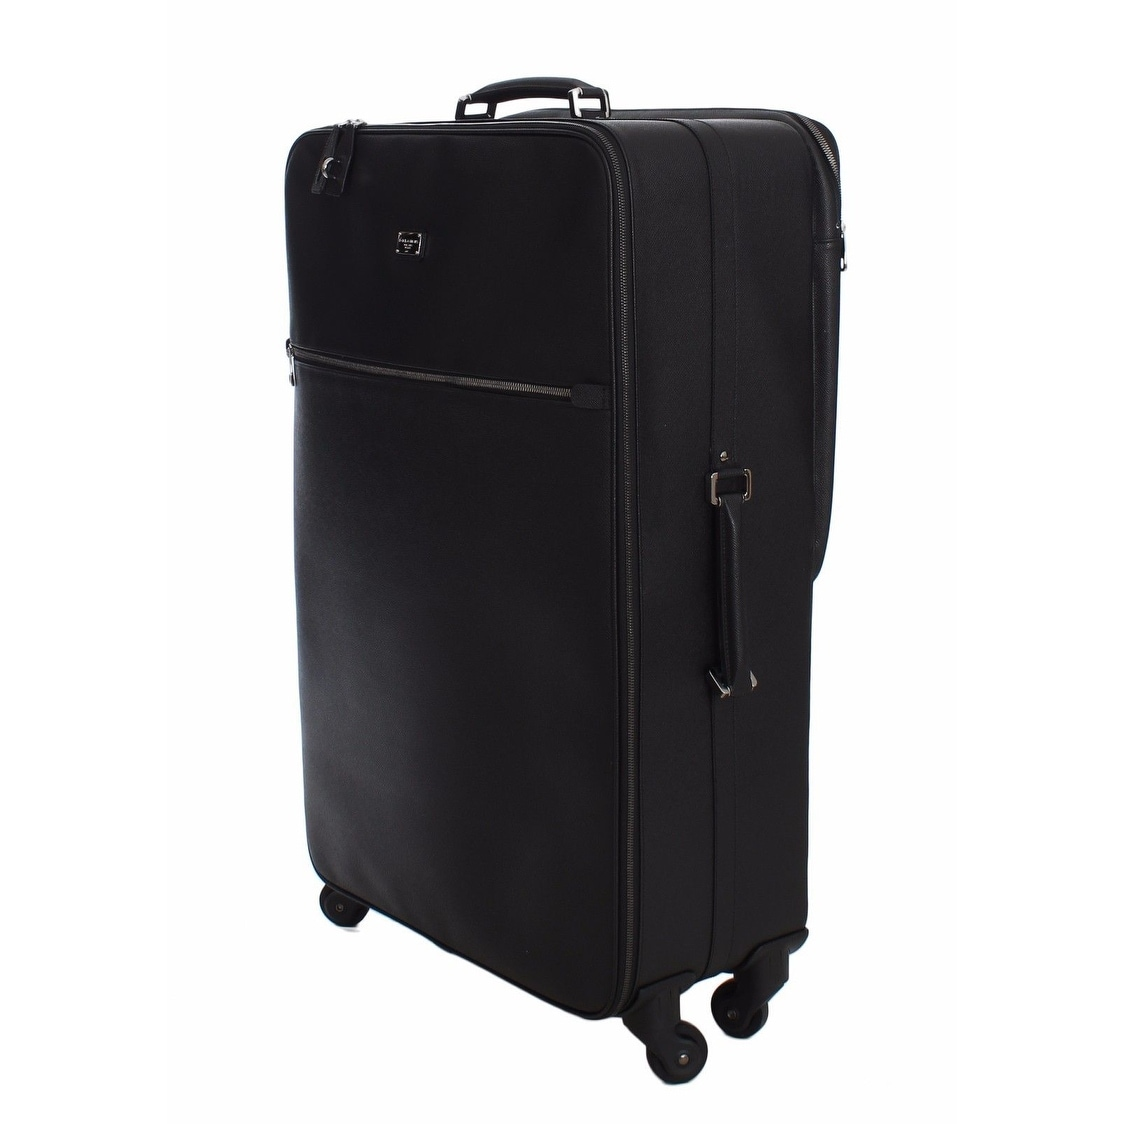 94381f3d1f Shop Dolce   Gabbana Luggage Bag Black Leather Travel Suitcase Trolley -  One size - Free Shipping Today - Overstock - 16714973